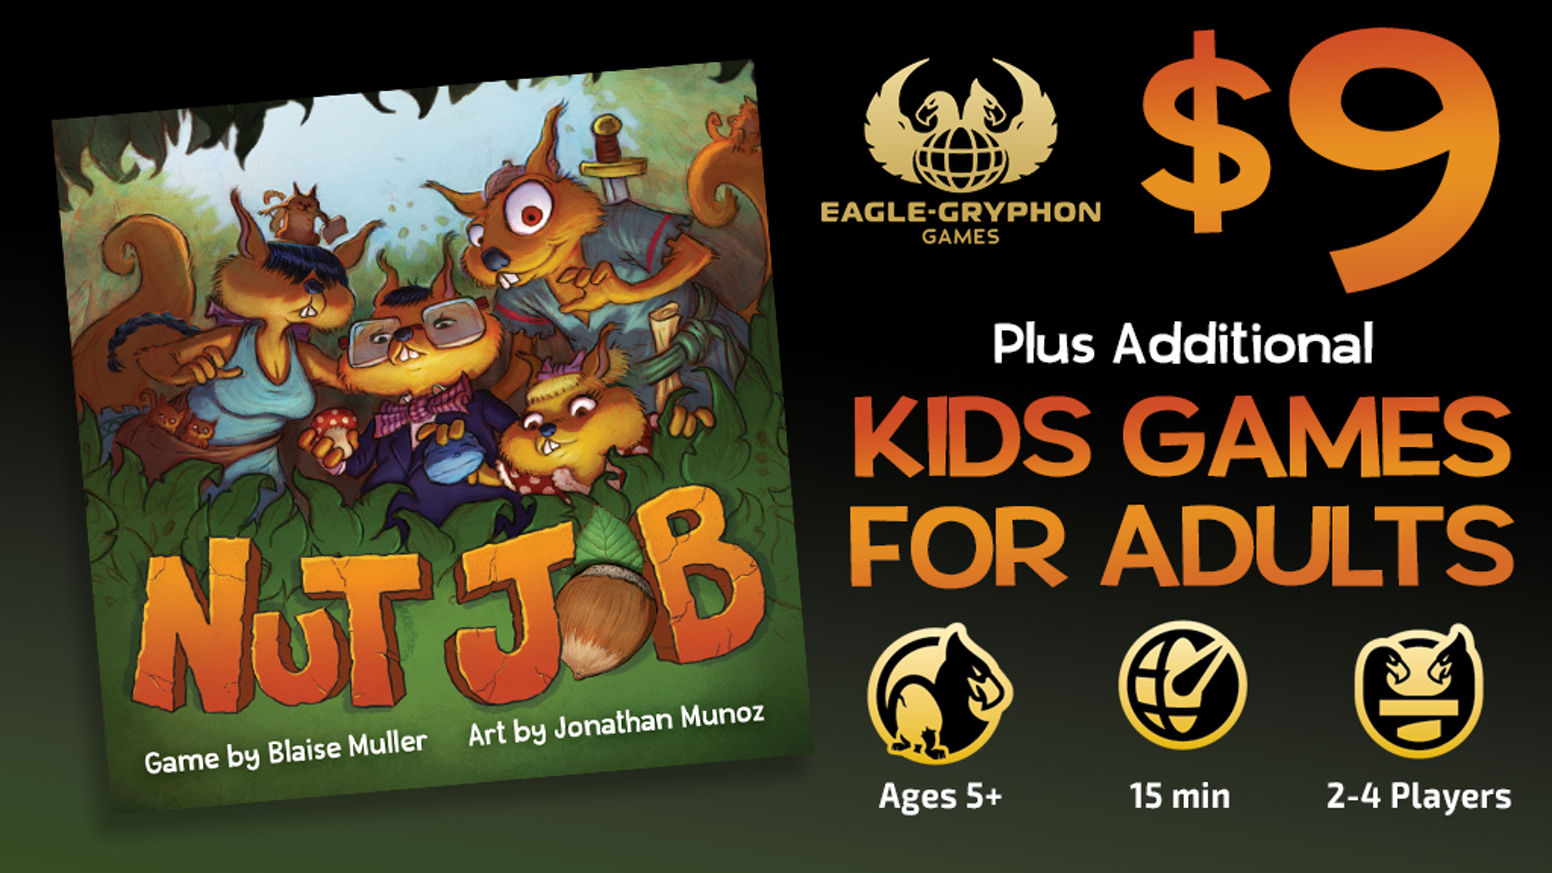 Kids Games for Adults (& Kids, too!) featuring Nut Job & Animals, Numbers, Food & Art -- games for all ages from Eagle-Gryphon Games!